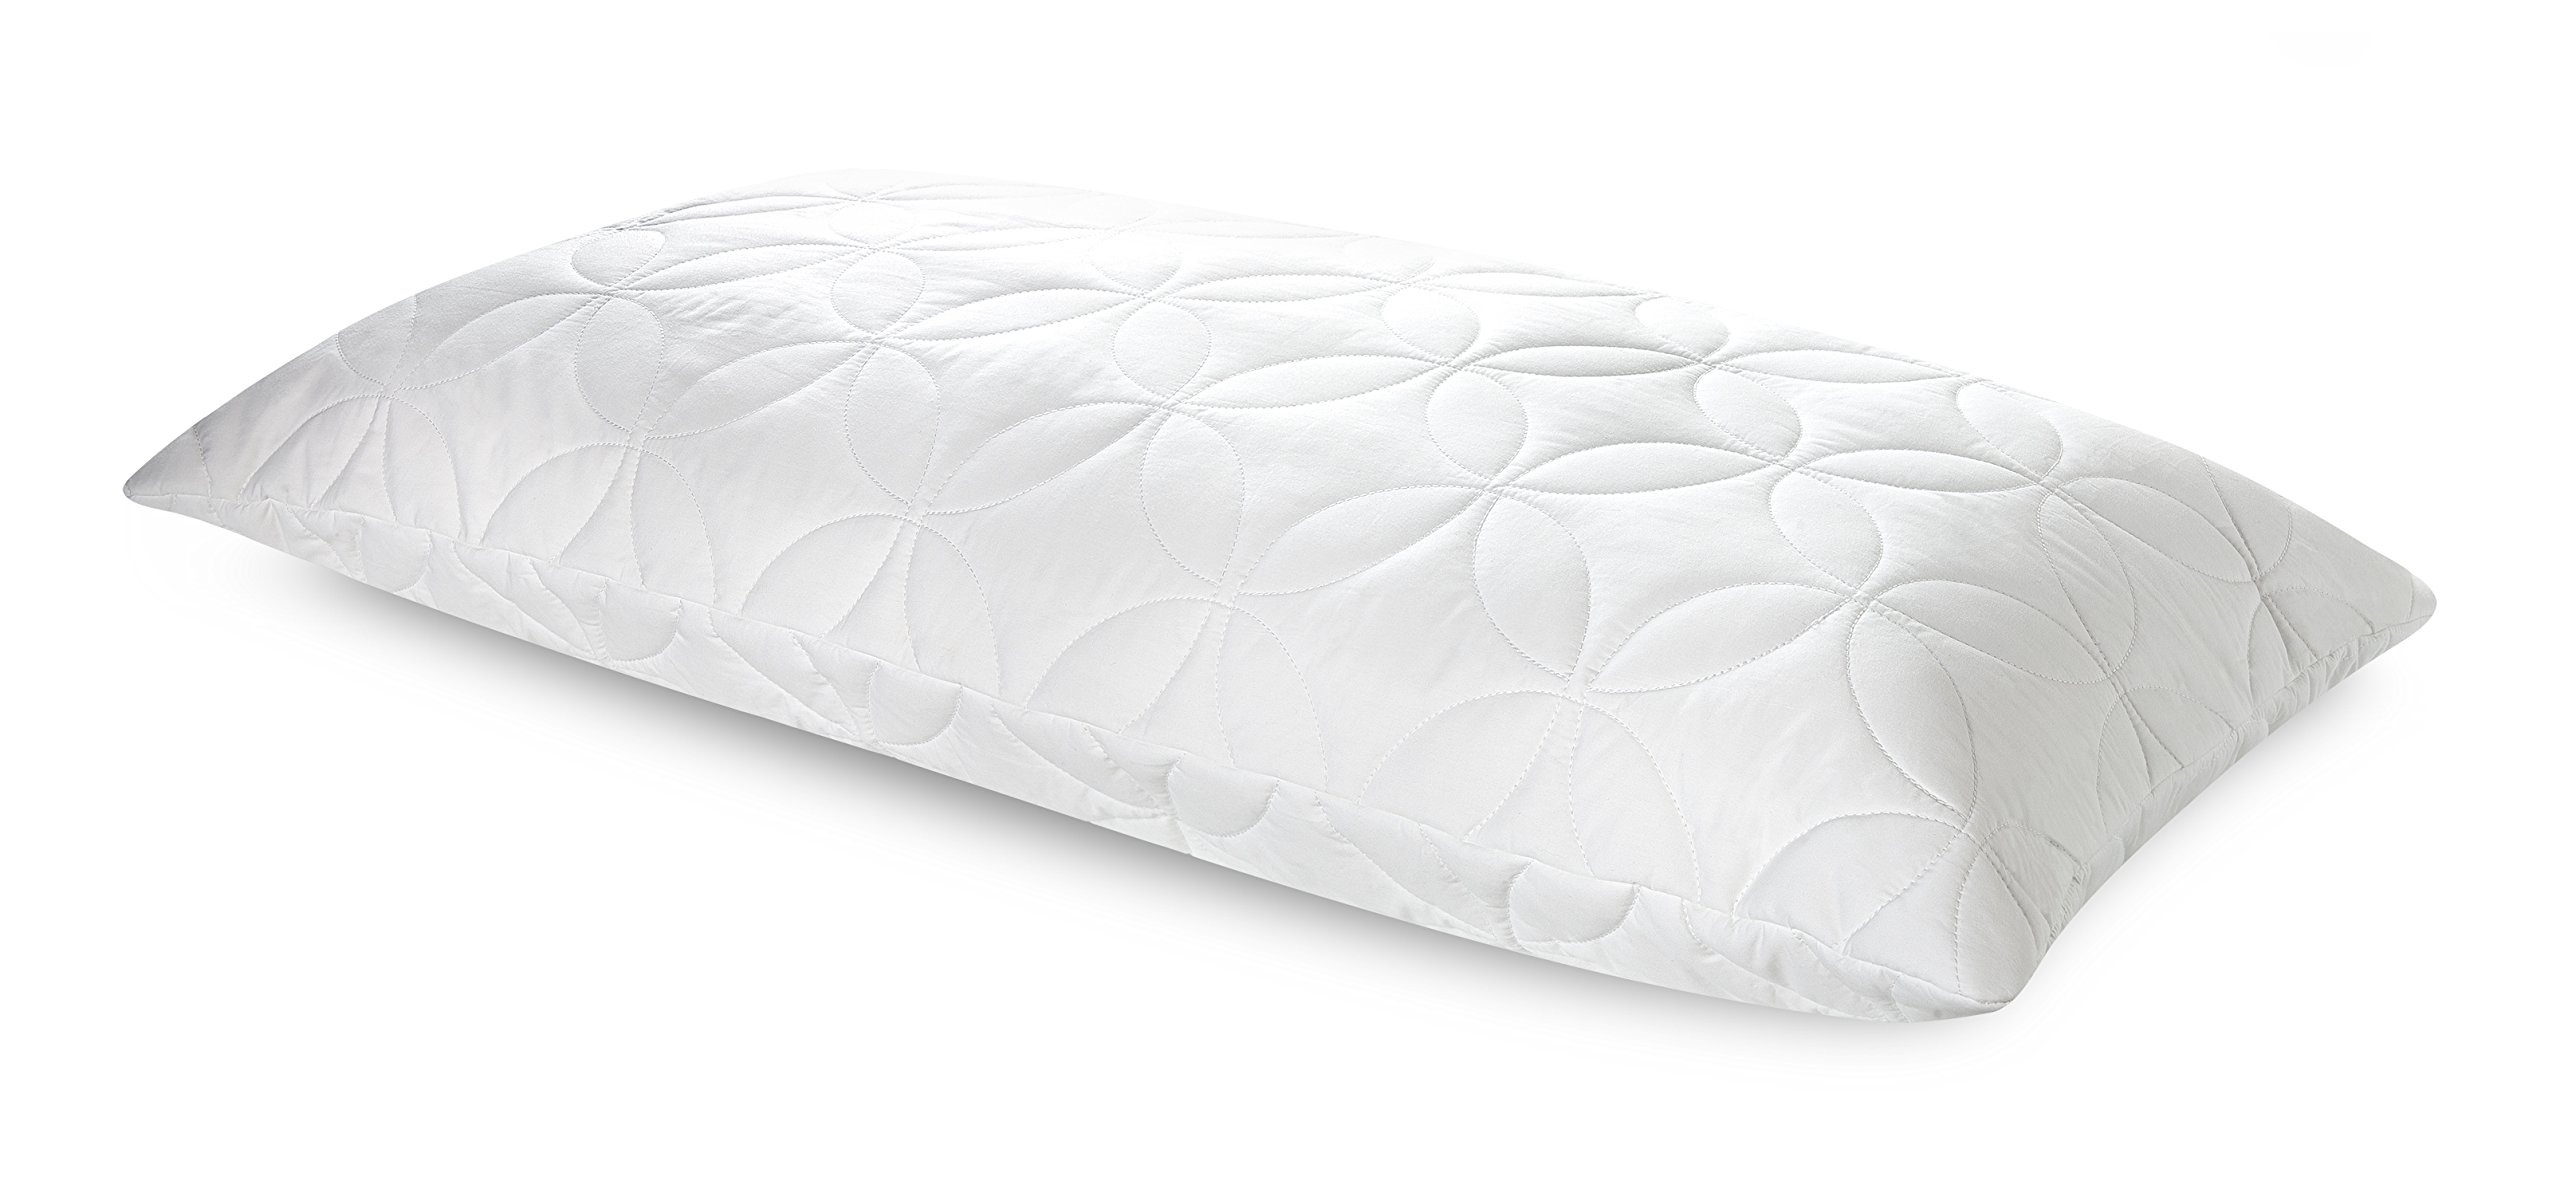 TEMPUR-Cloud Soft & Conforming Pillow, King by Tempur-Pedic